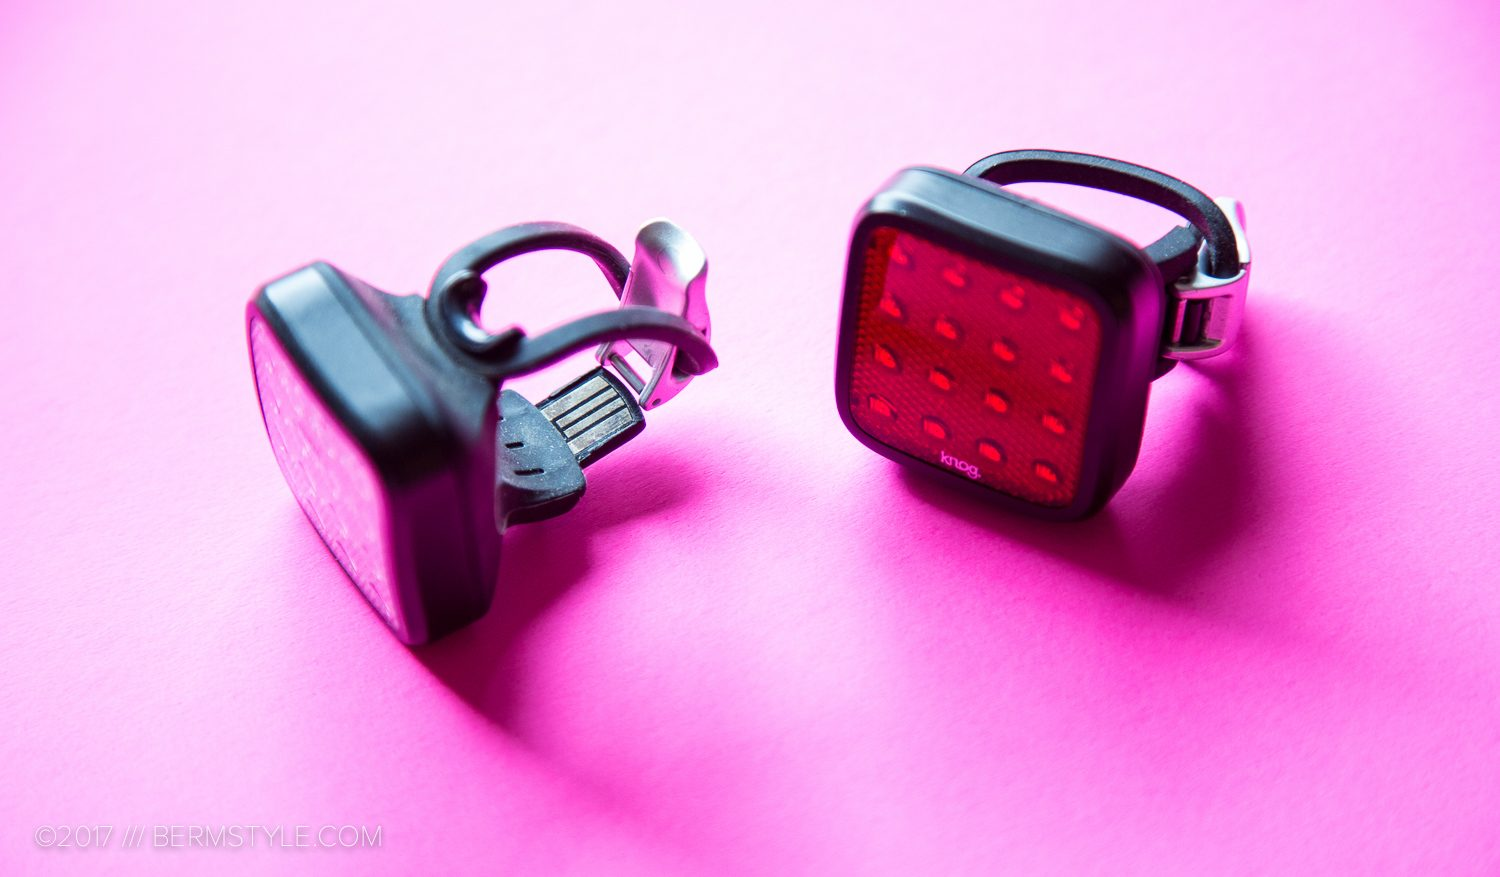 Review: Knog Blinder LED Lights